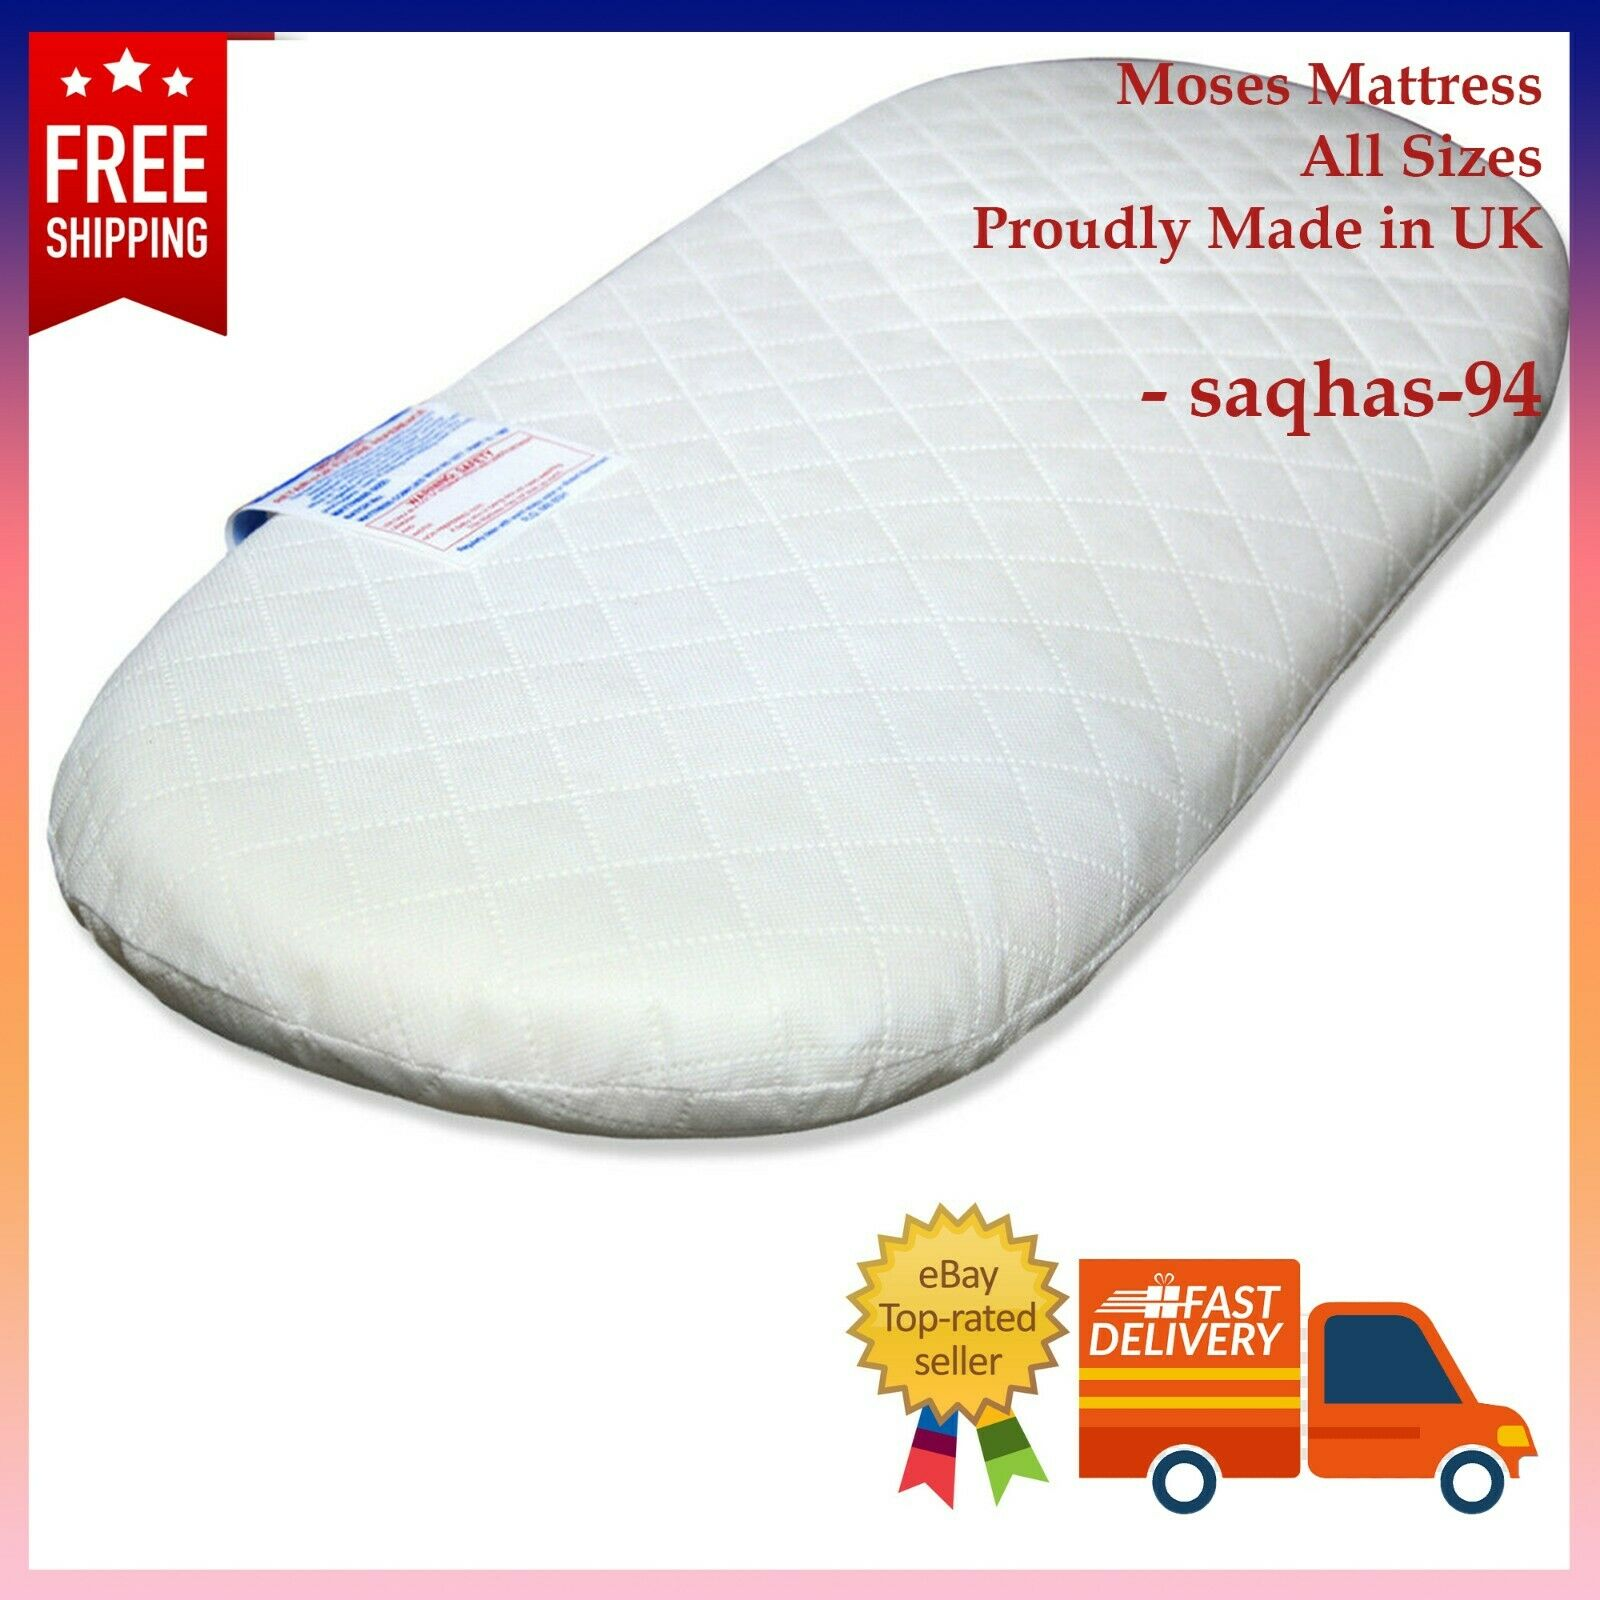 Quilted Breatheable Hypoallergenic Moses Pram Basket Mattress Oval Shaped Waterproof Mattress Size 65 X 35 X 3.5 cm